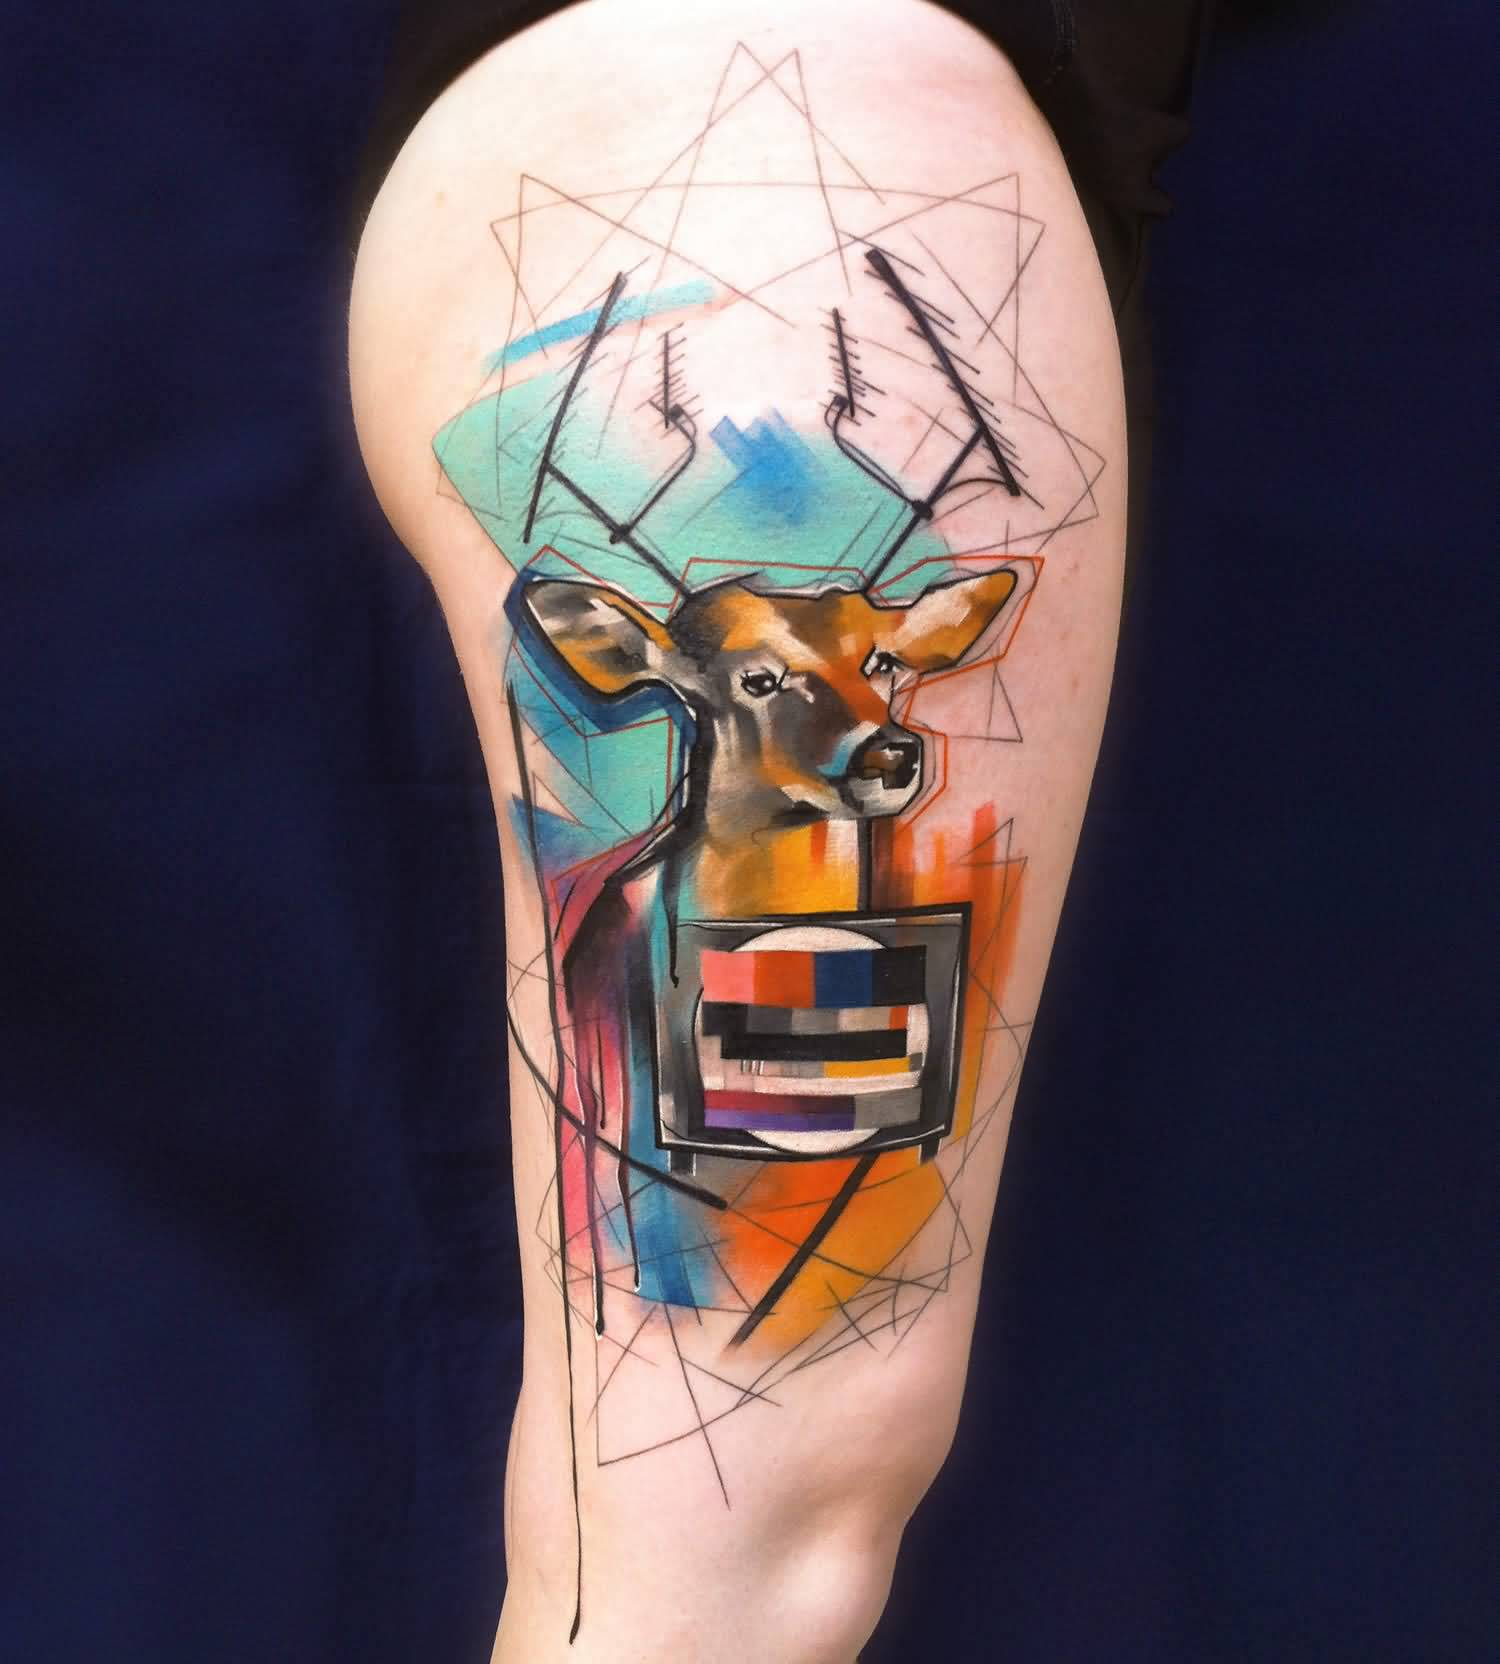 40 Exceptional Artistic Tattoos Amazing Tattoo Ideas Ideas And Designs